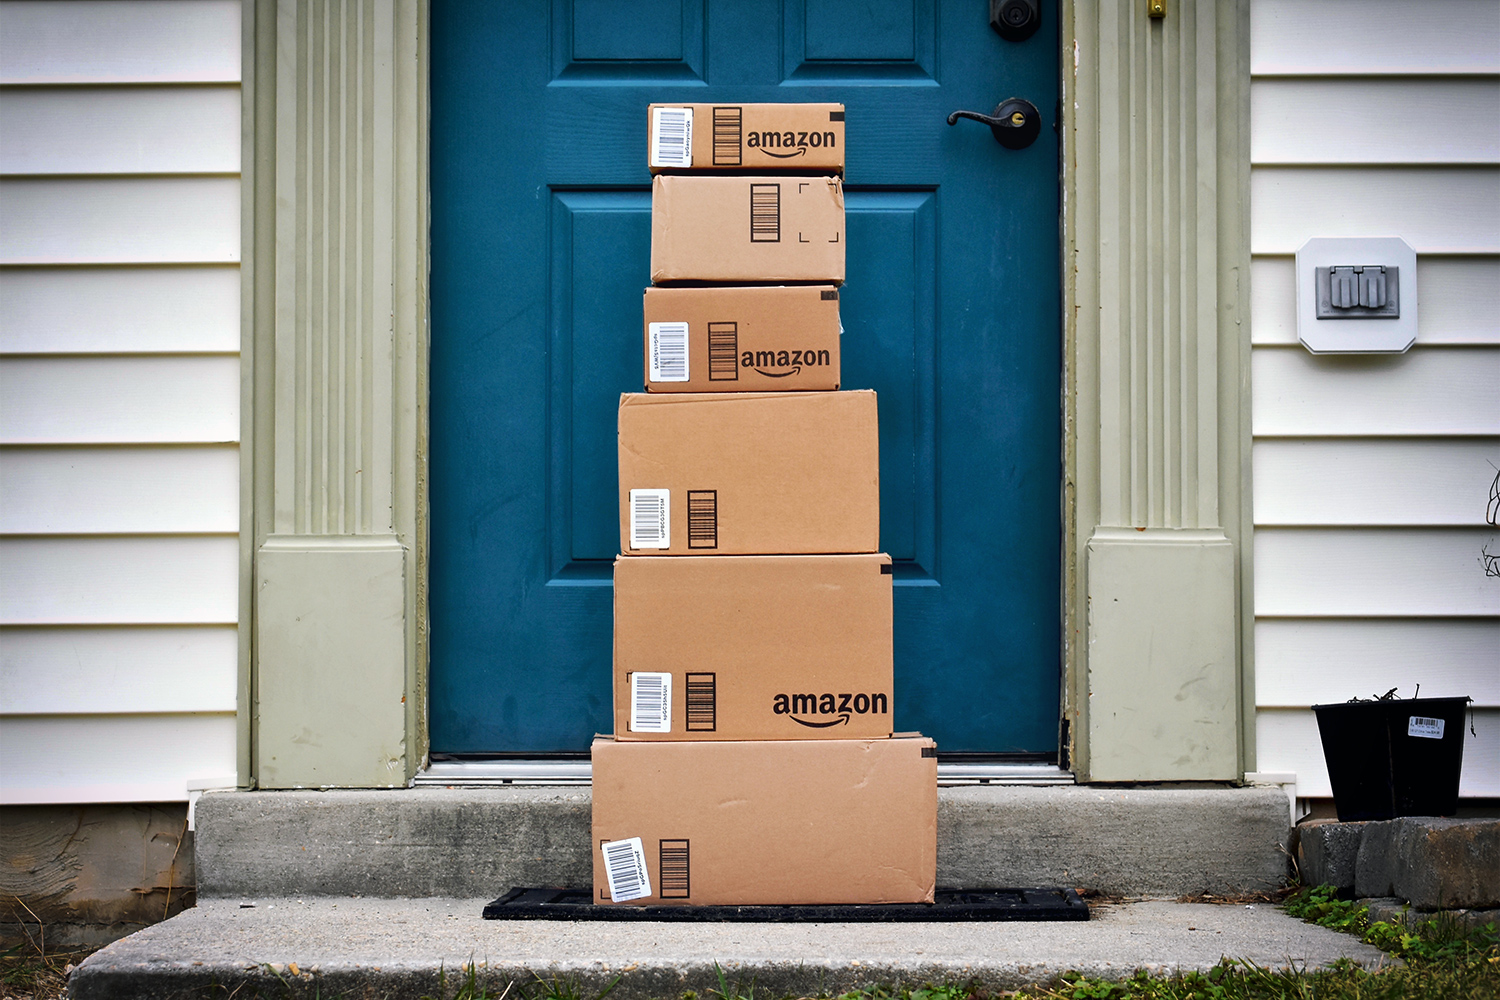 Protect Your Packages from Porch Pirates How to Safely Travel in a Car Preplan & Protect Your Packages from Porch Pirates - Pro Locksmith San Diego